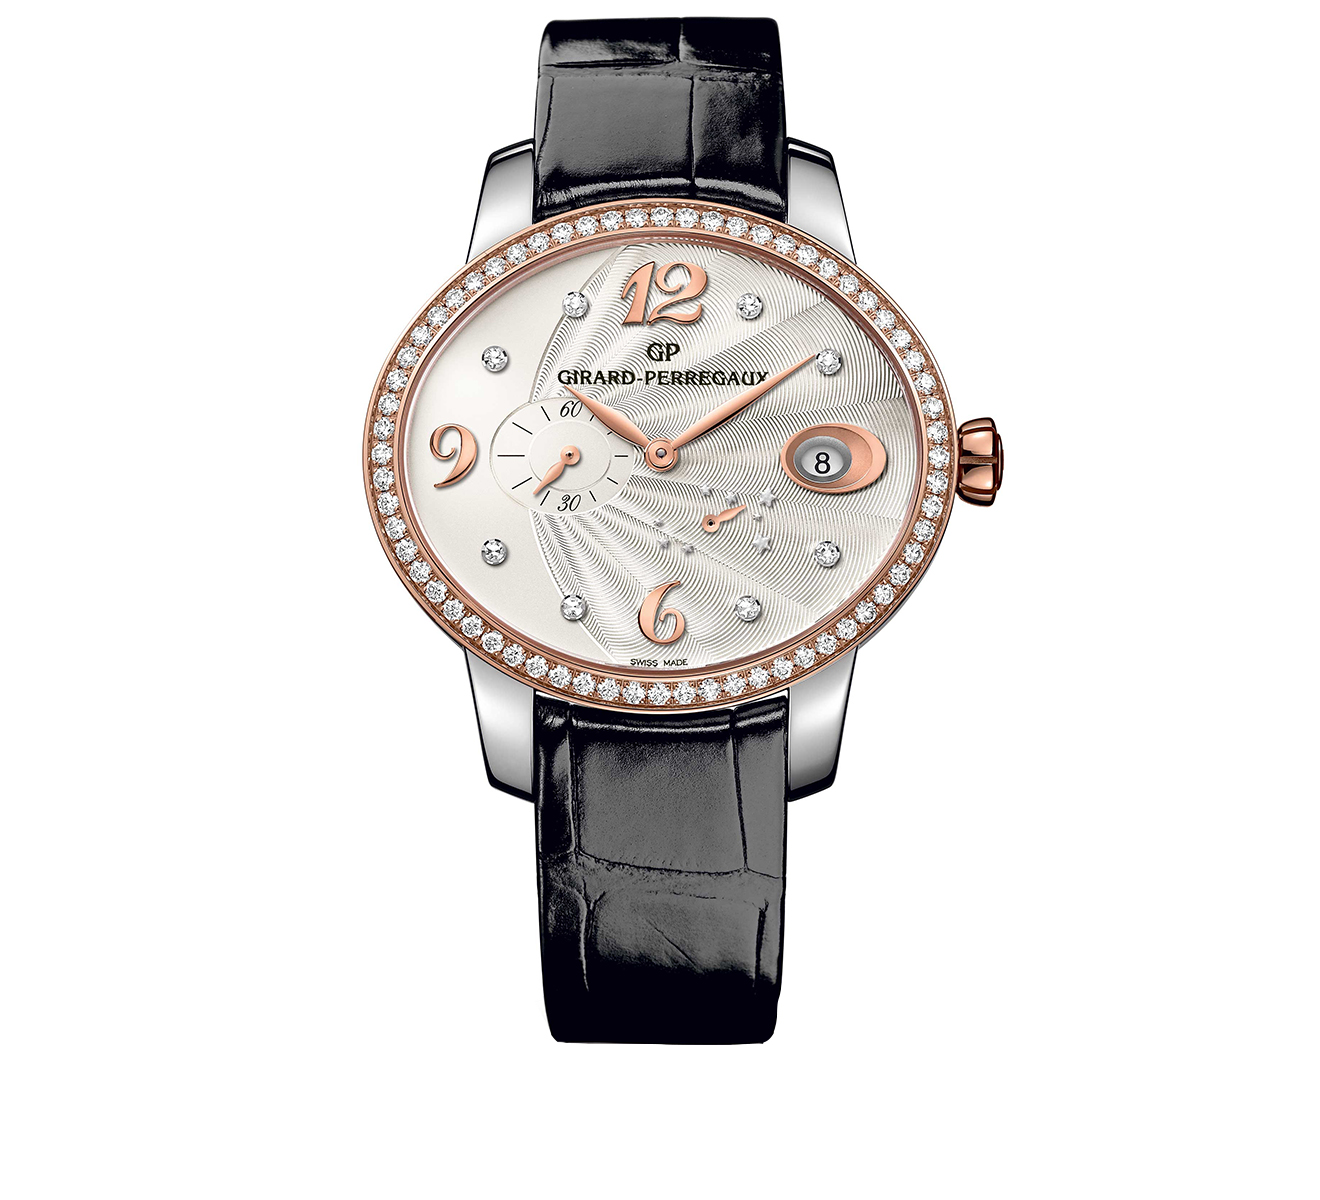 Часы Power Reserve Steel and Rose Gold GIRARD-PERREGAUX Cat's Eye 80486D56A162-CK6A - фото 1 – Mercury